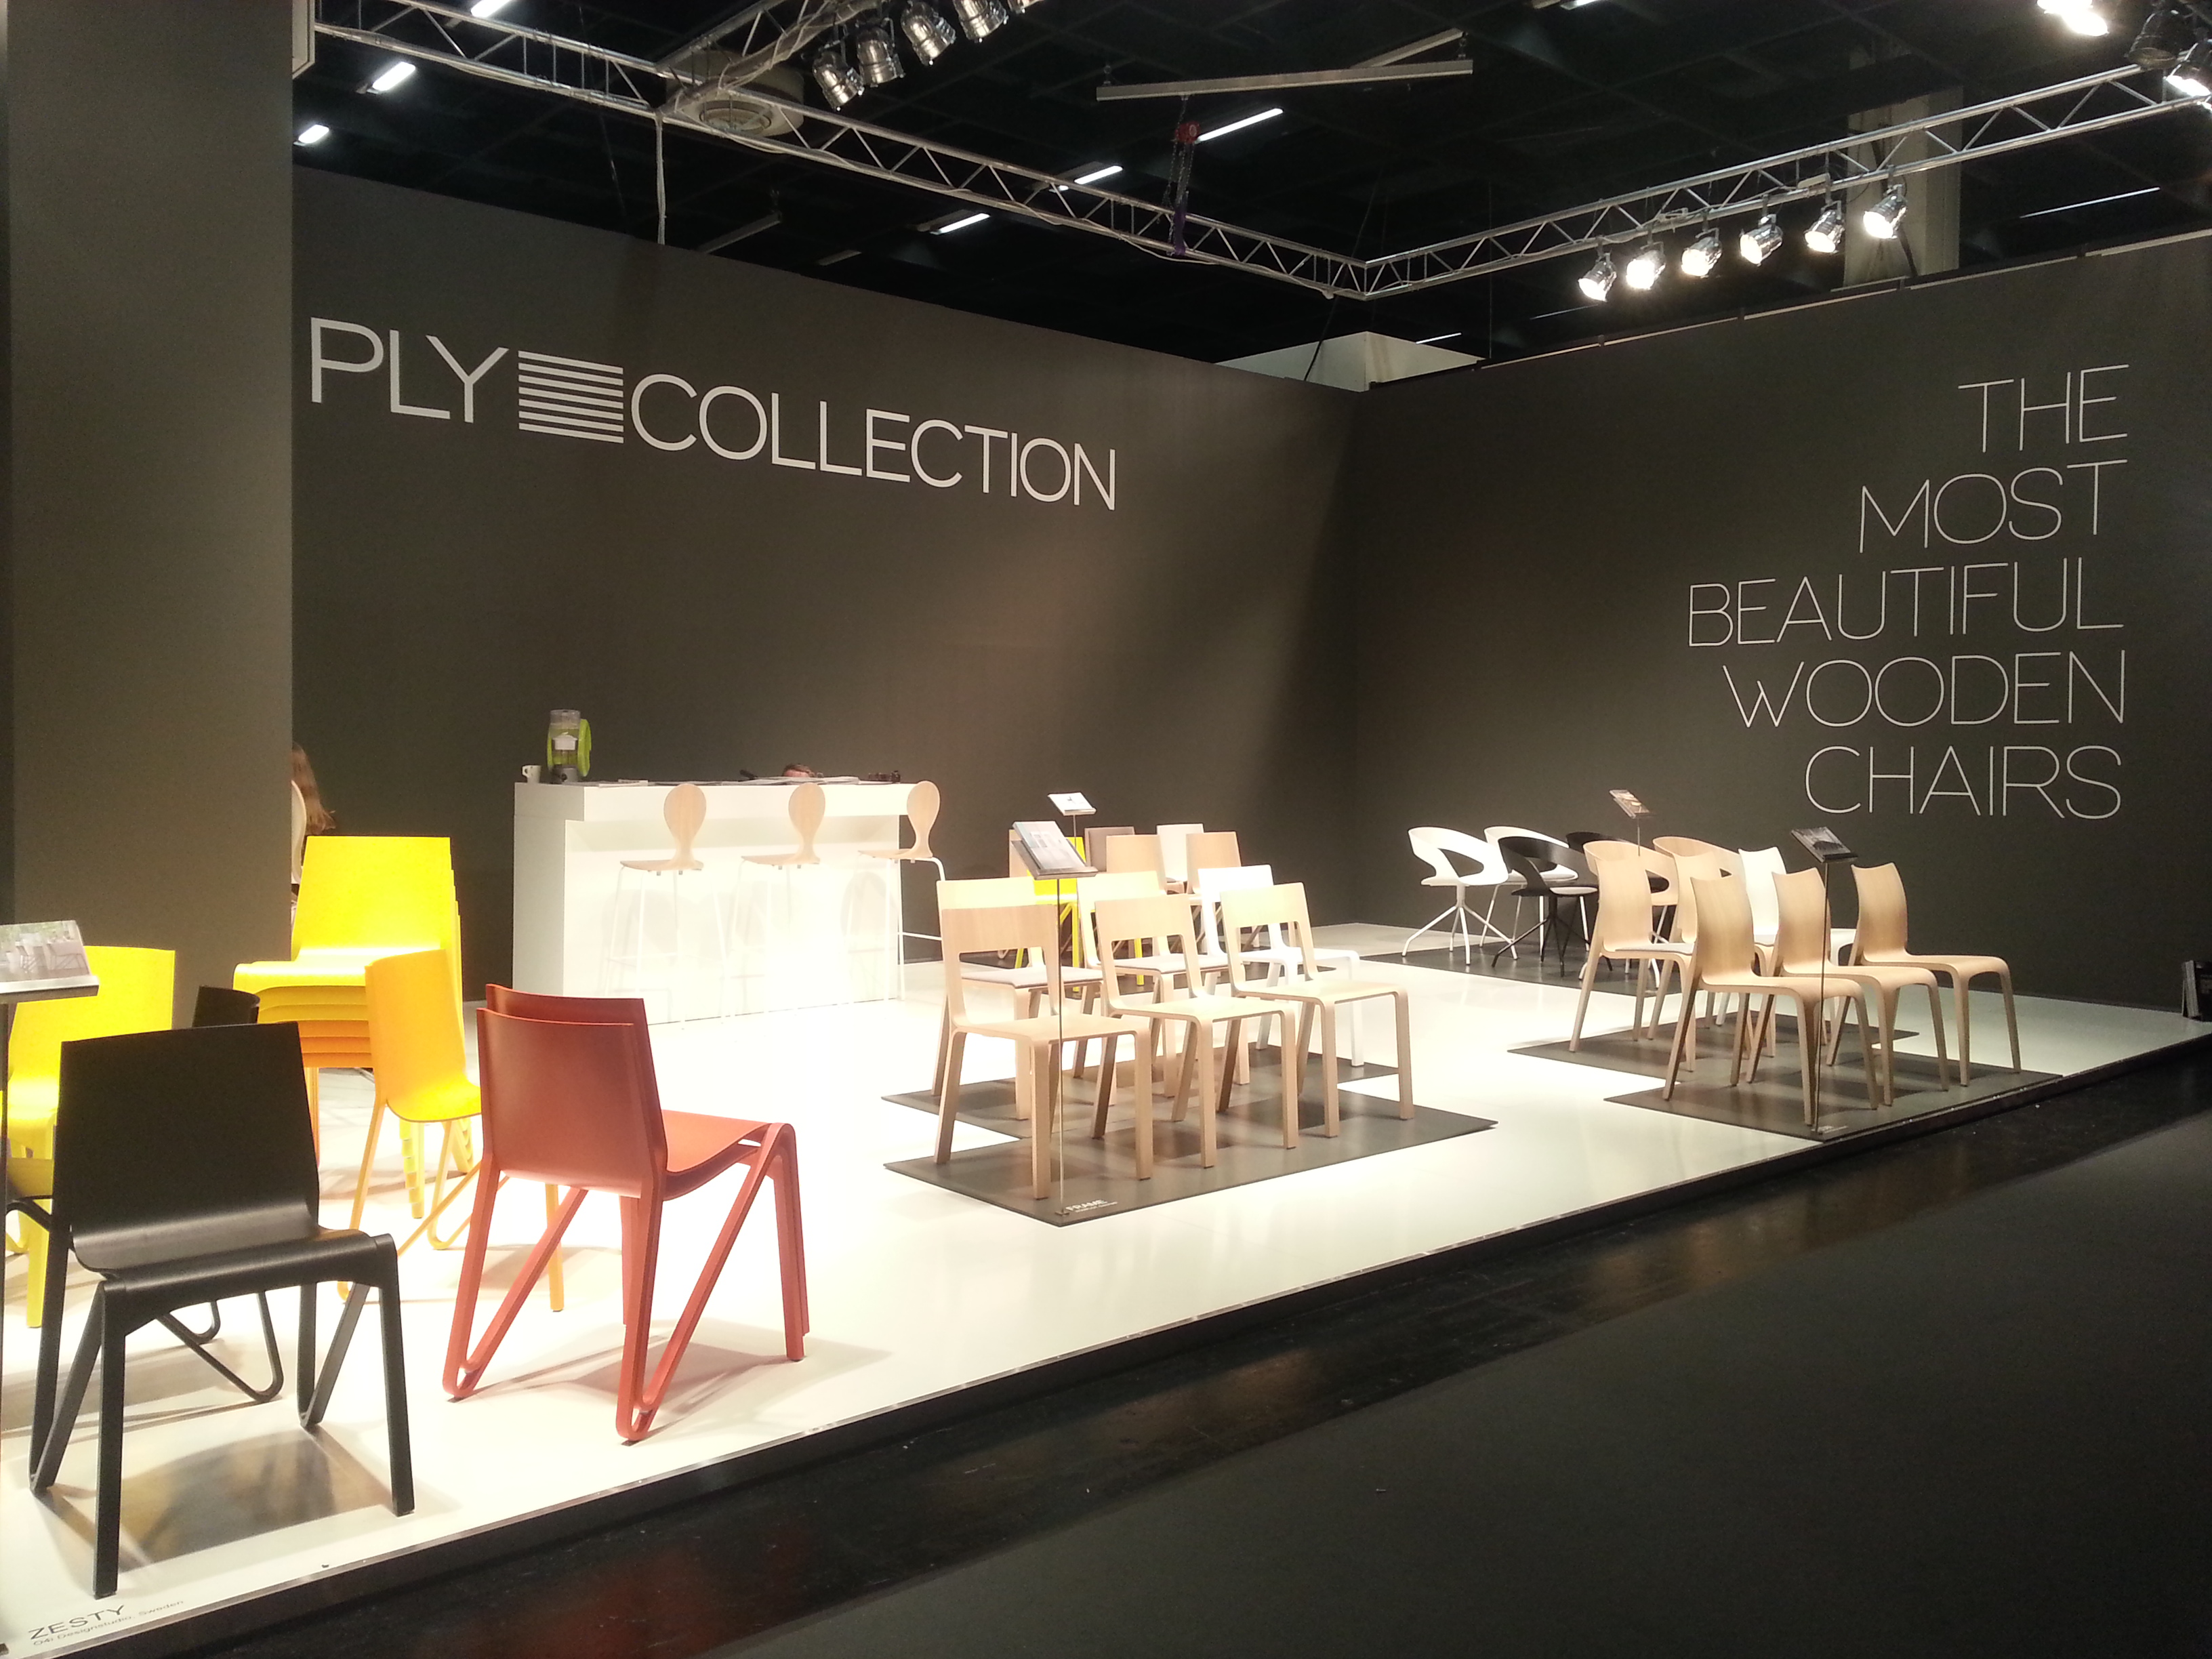 2014 Orgatec PLYCOLLECTION (5)